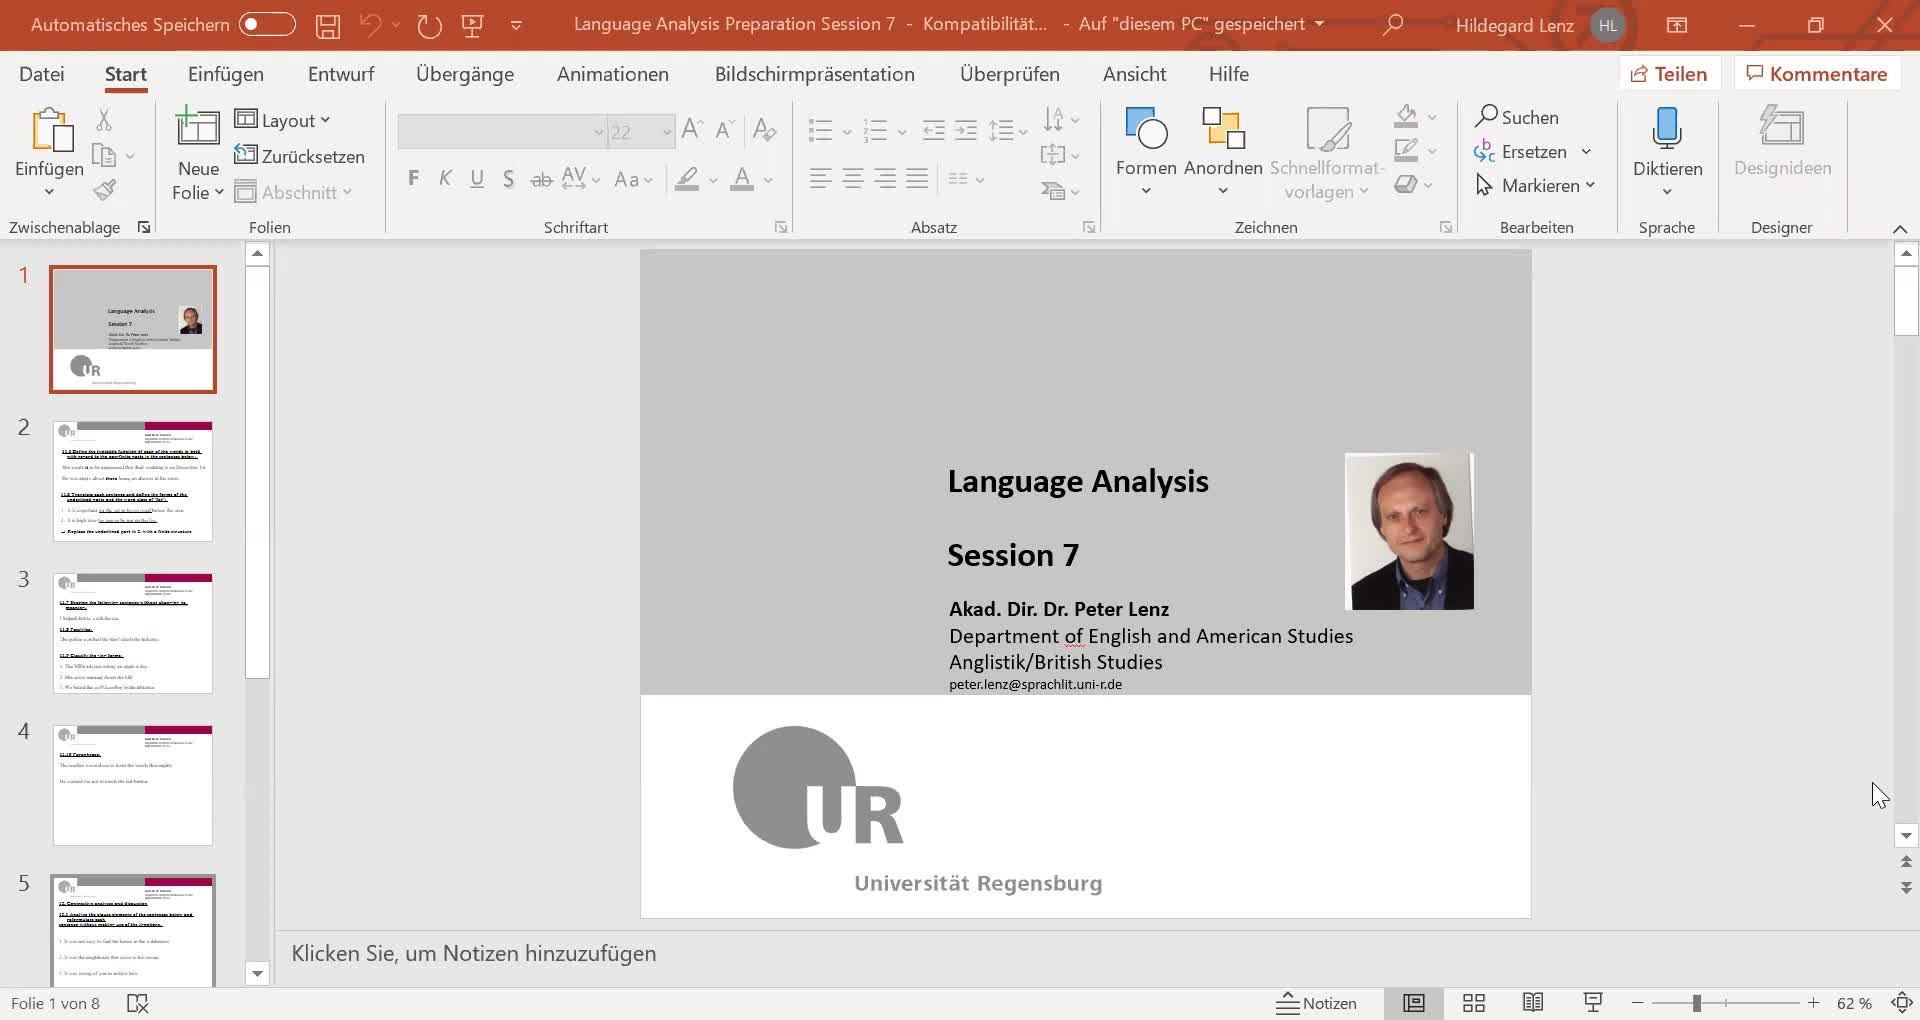 Language Analysis Session 7 Video